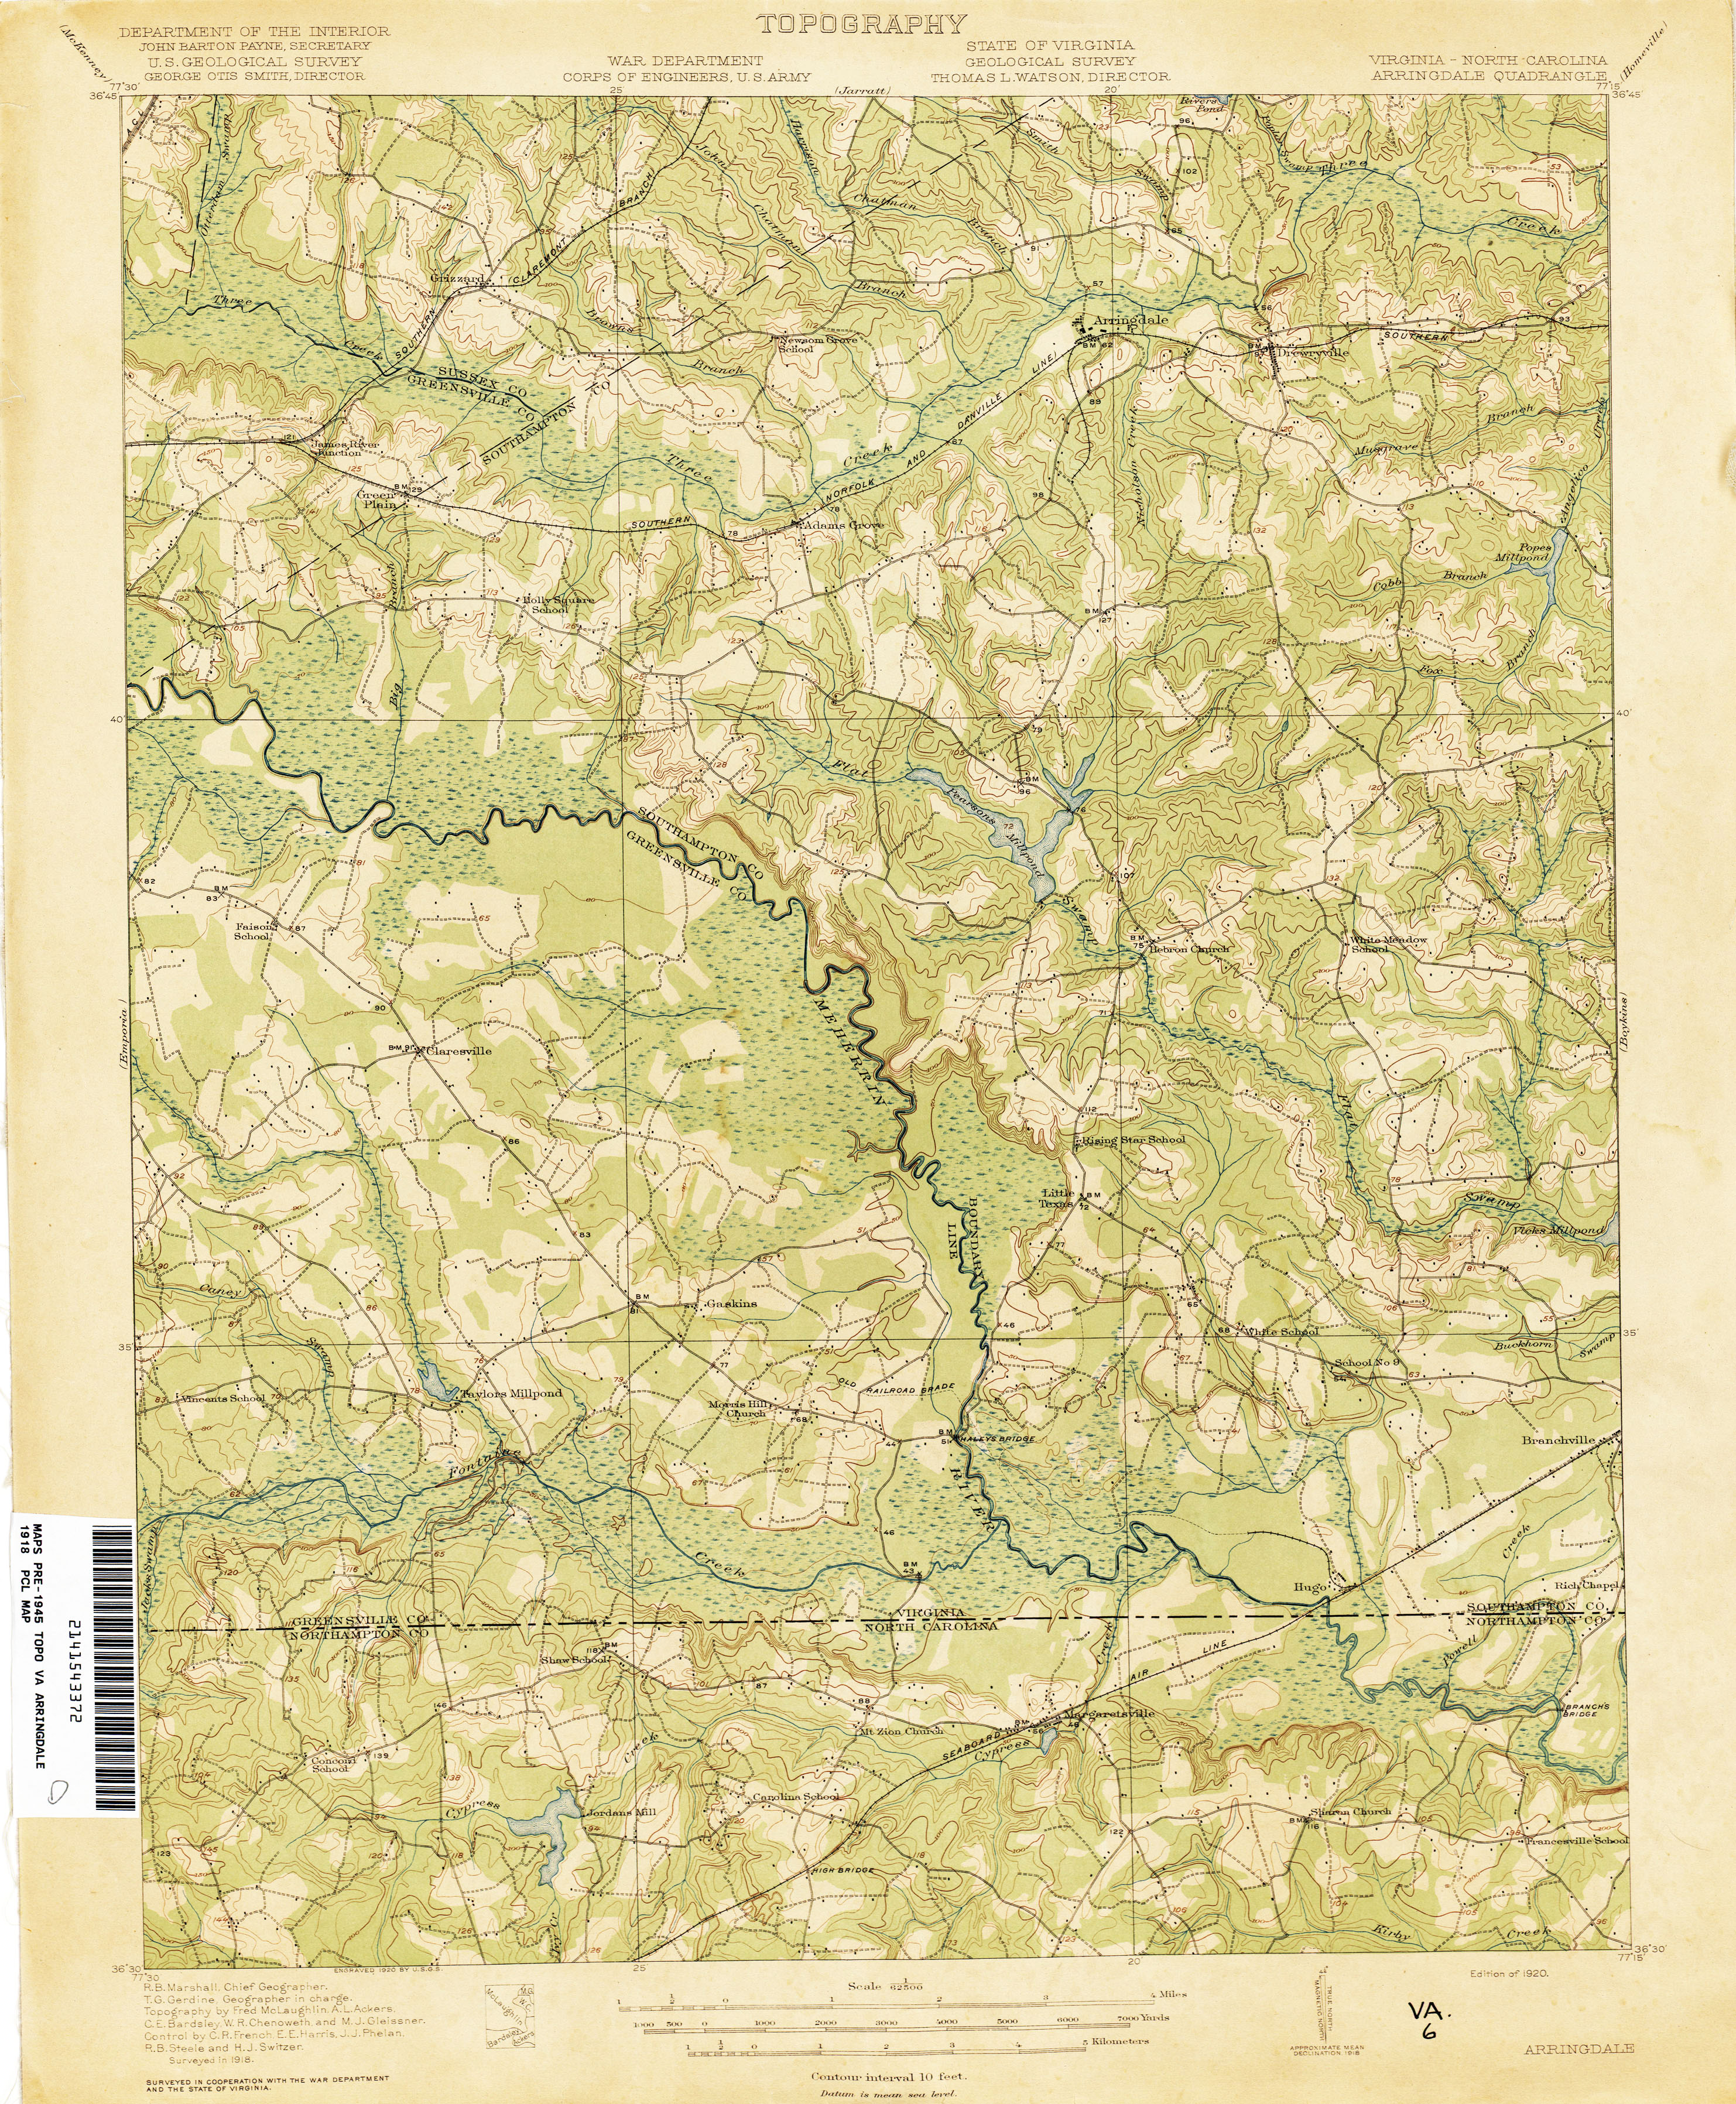 Virginia Historical Topographic Maps - Perry-Castañeda Map ...